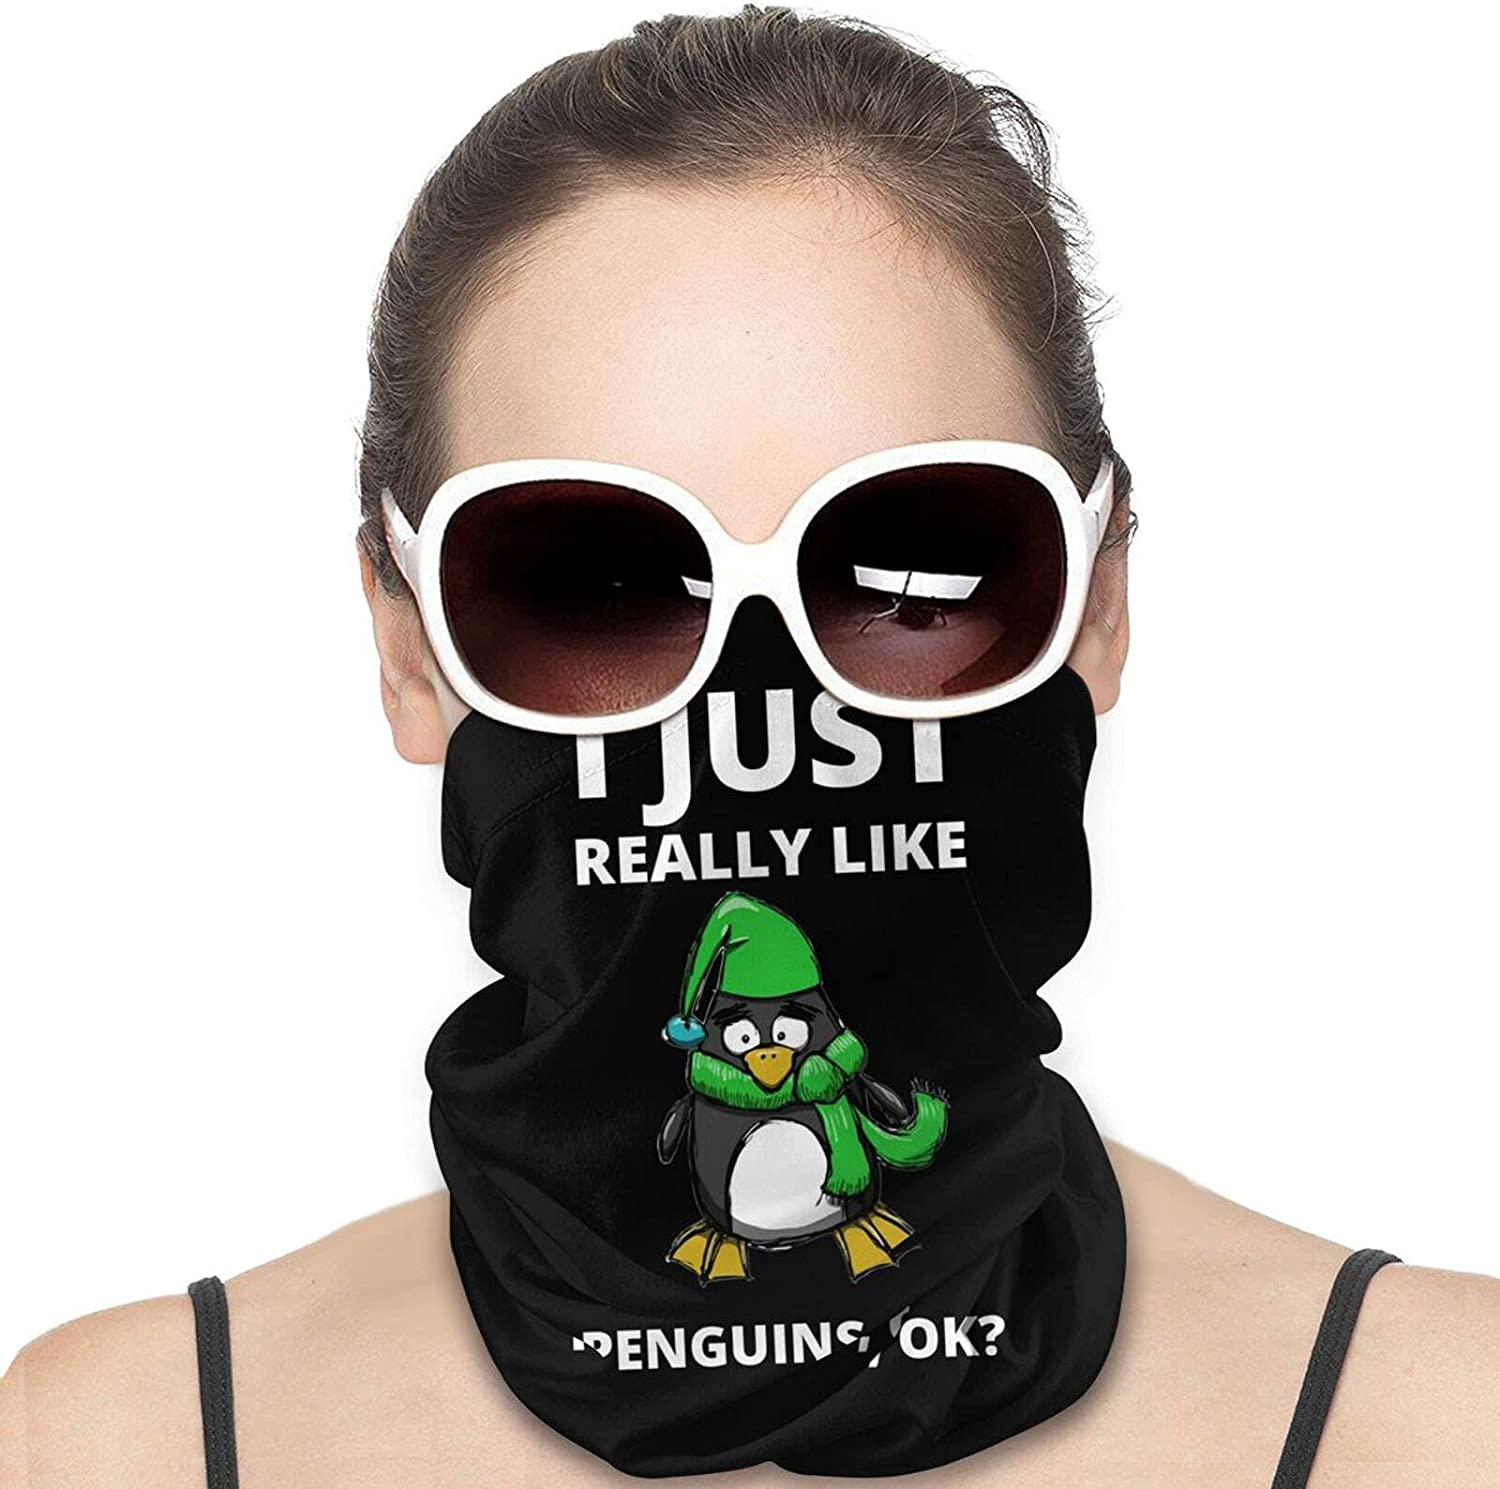 I JUST REALLY LIKE PENGUINS OK Round Neck Gaiter Bandnas Face Cover Uv Protection Prevent bask in Ice Scarf Headbands Perfect for Motorcycle Cycling Running Festival Raves Outdoors